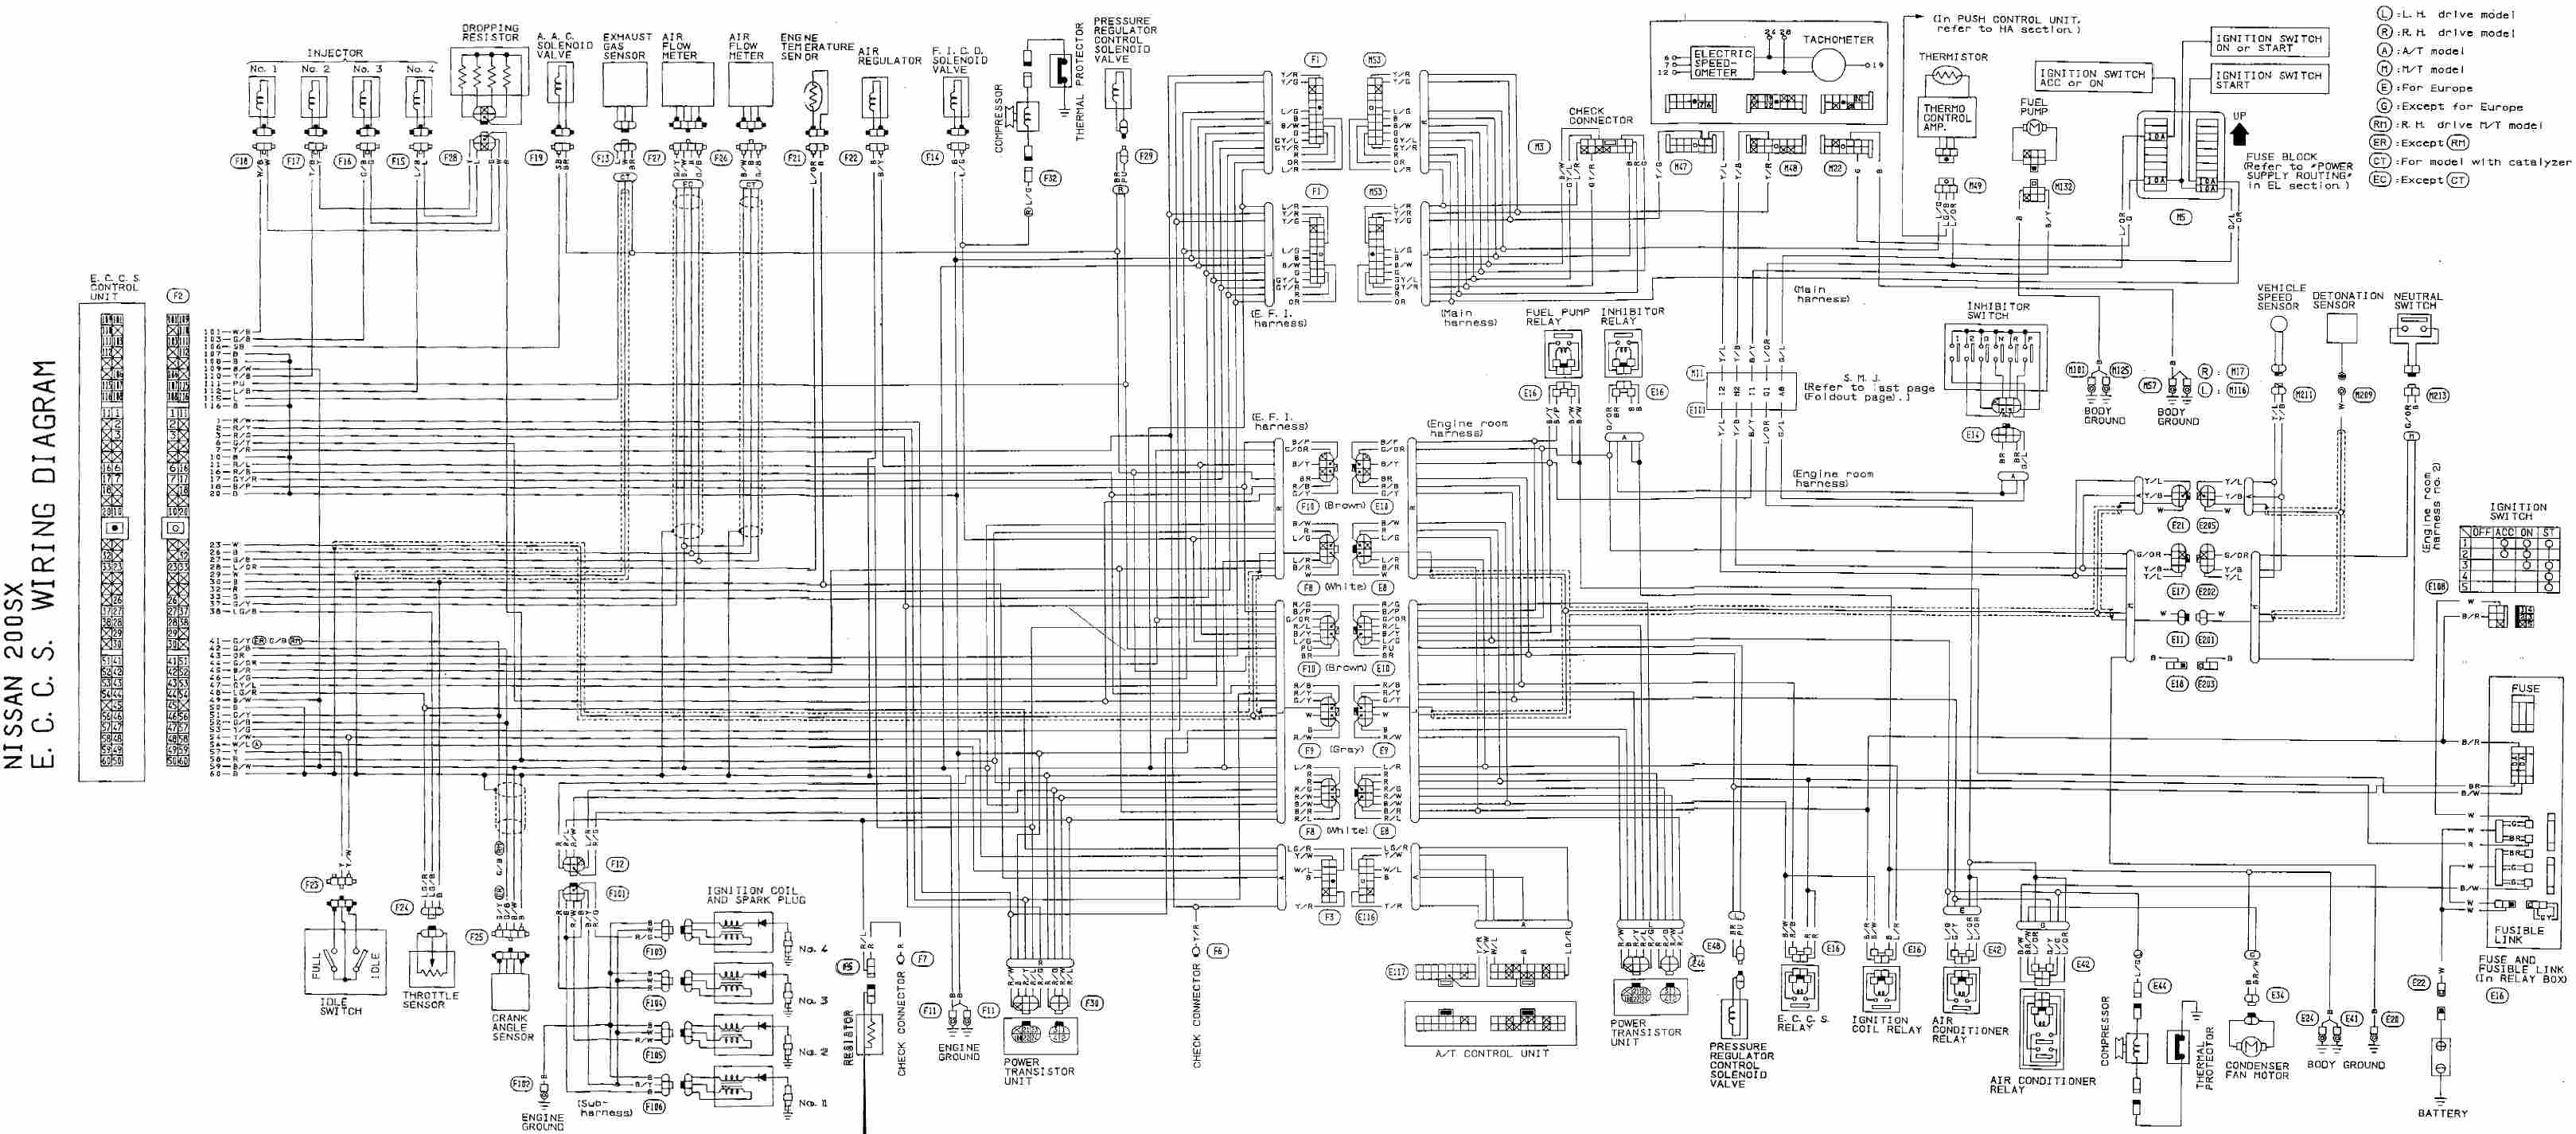 1997 Nissan 200sx Wiring Diagram - Wiring Diagram & Cable ... on